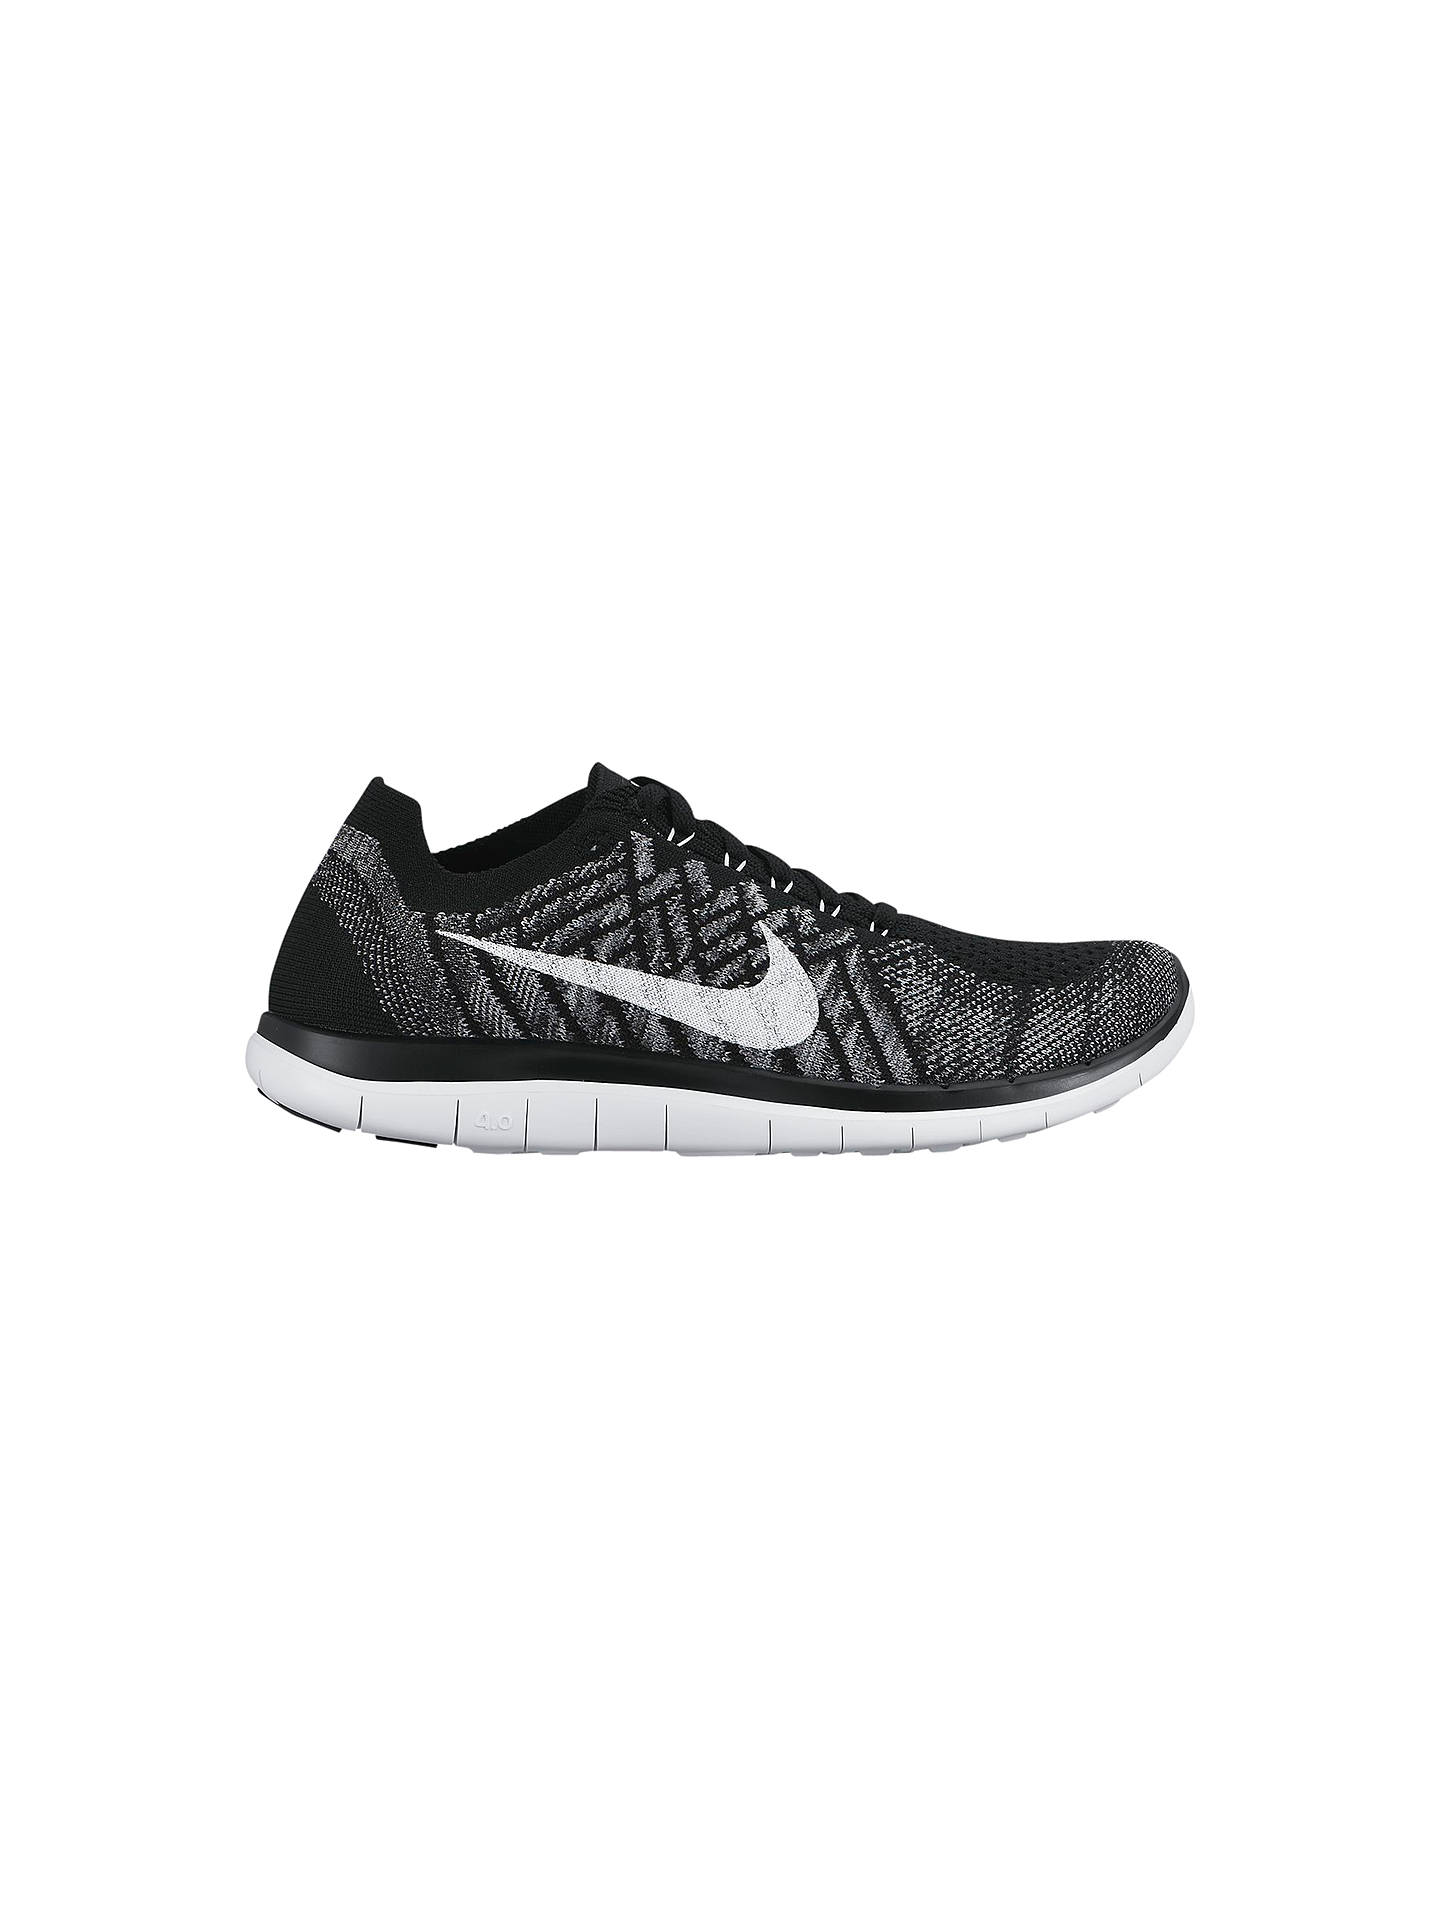 b9529ad50aa3 Nike Free 4.0 Flyknit Women s Running Shoes at John Lewis   Partners